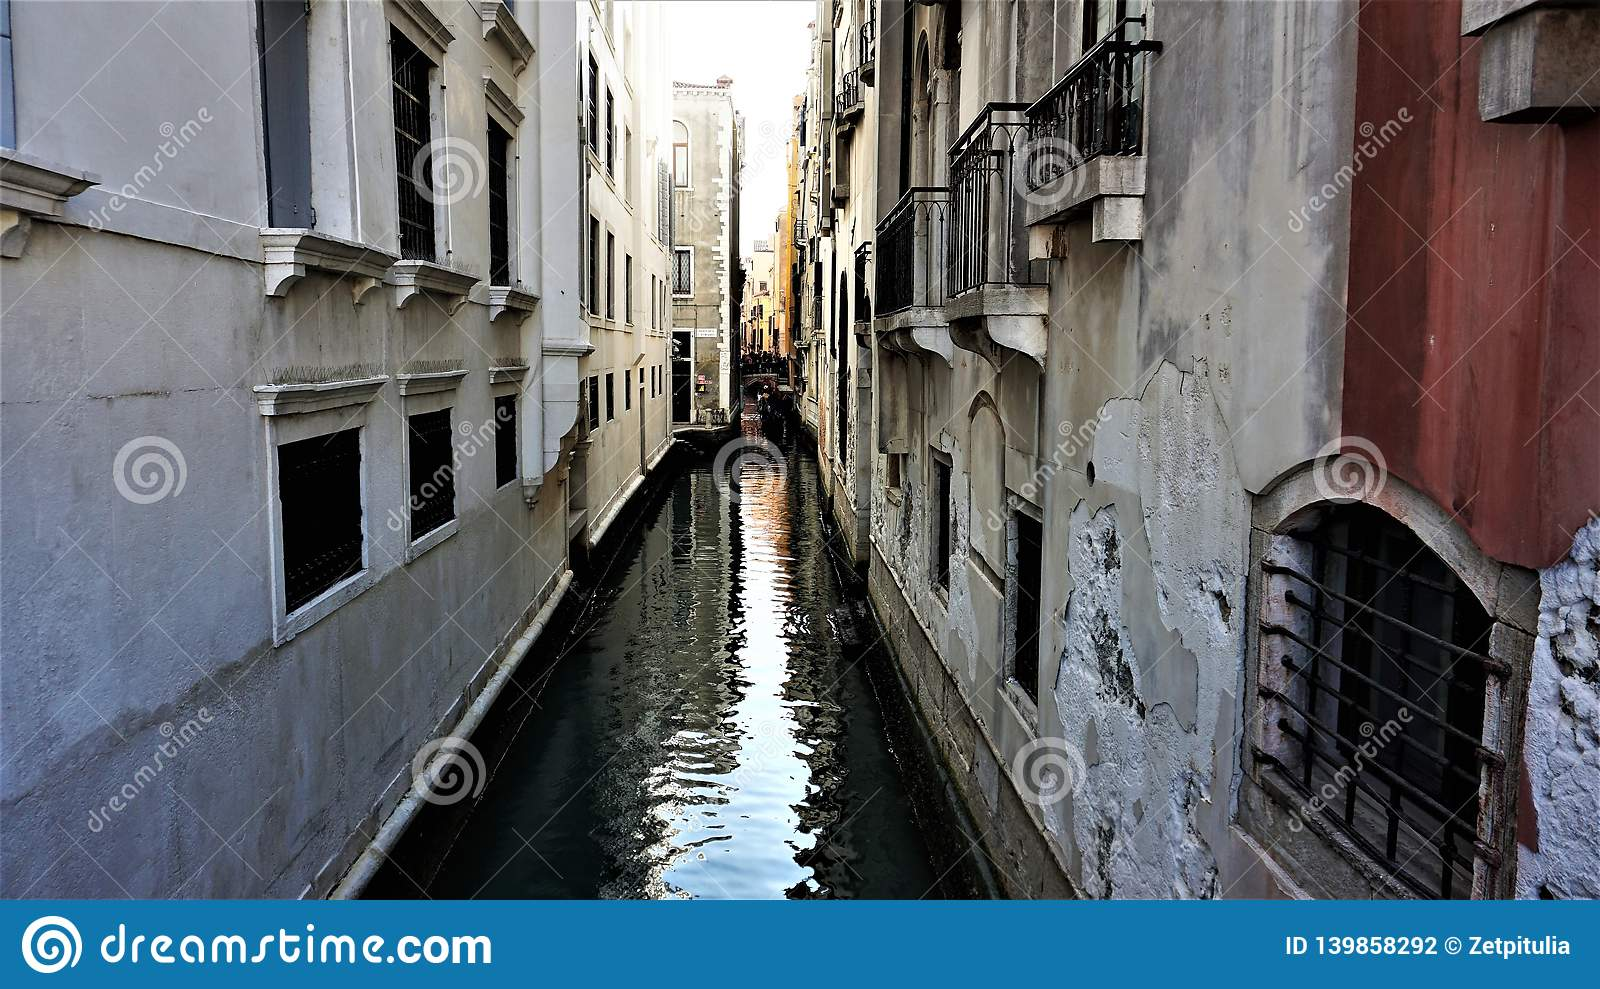 Narrow canal, between the whites and the kiln houses of Venice, Italy